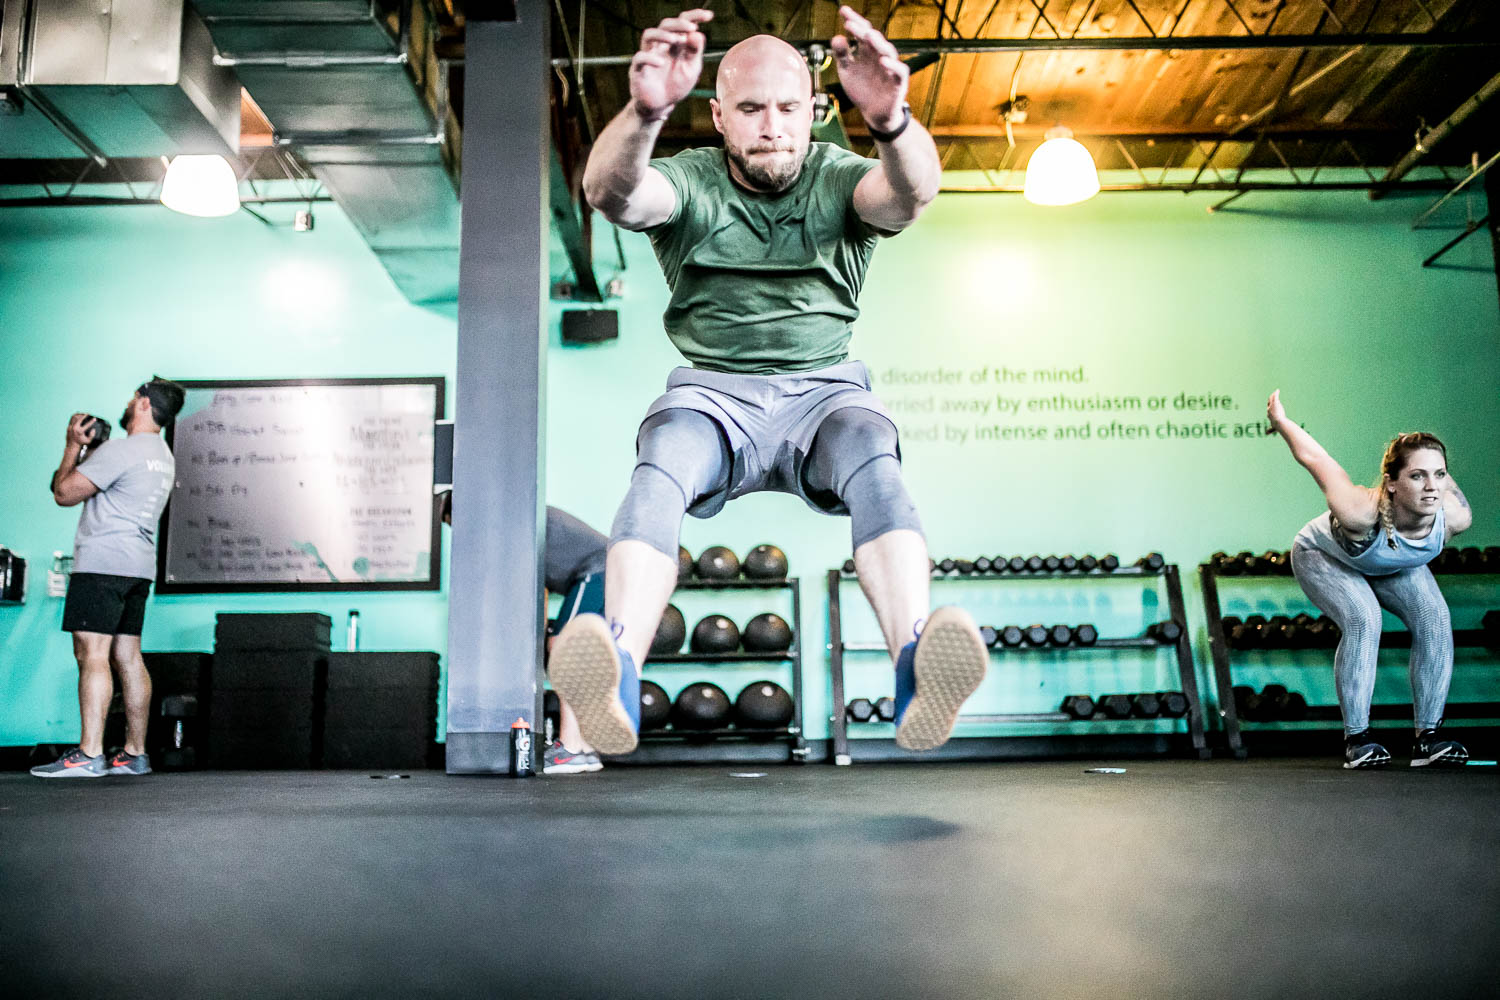 MADabolic focuses on long-term results, focuses on strength and form. (Image: MADabolic)